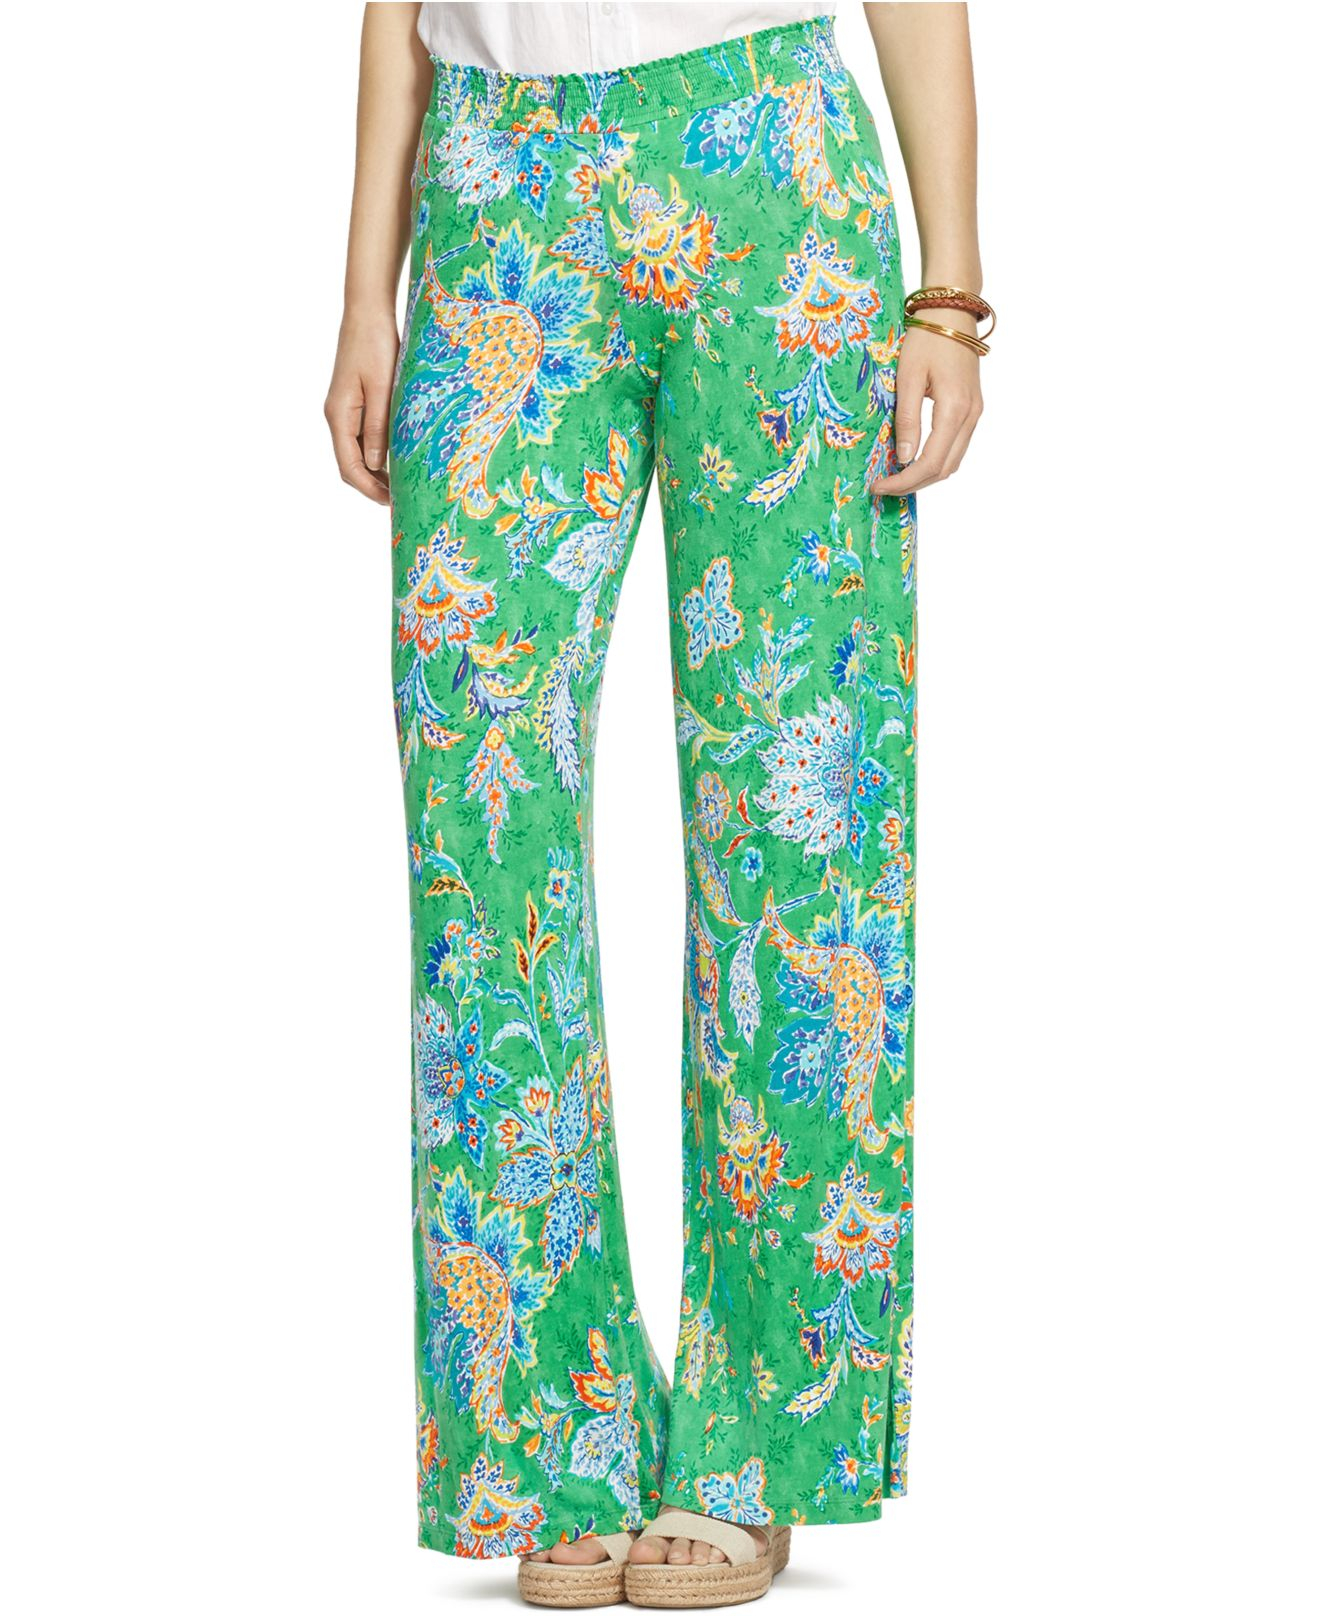 Lauren by ralph lauren Plus Size Wide-Leg Paisley Pants in Green ...